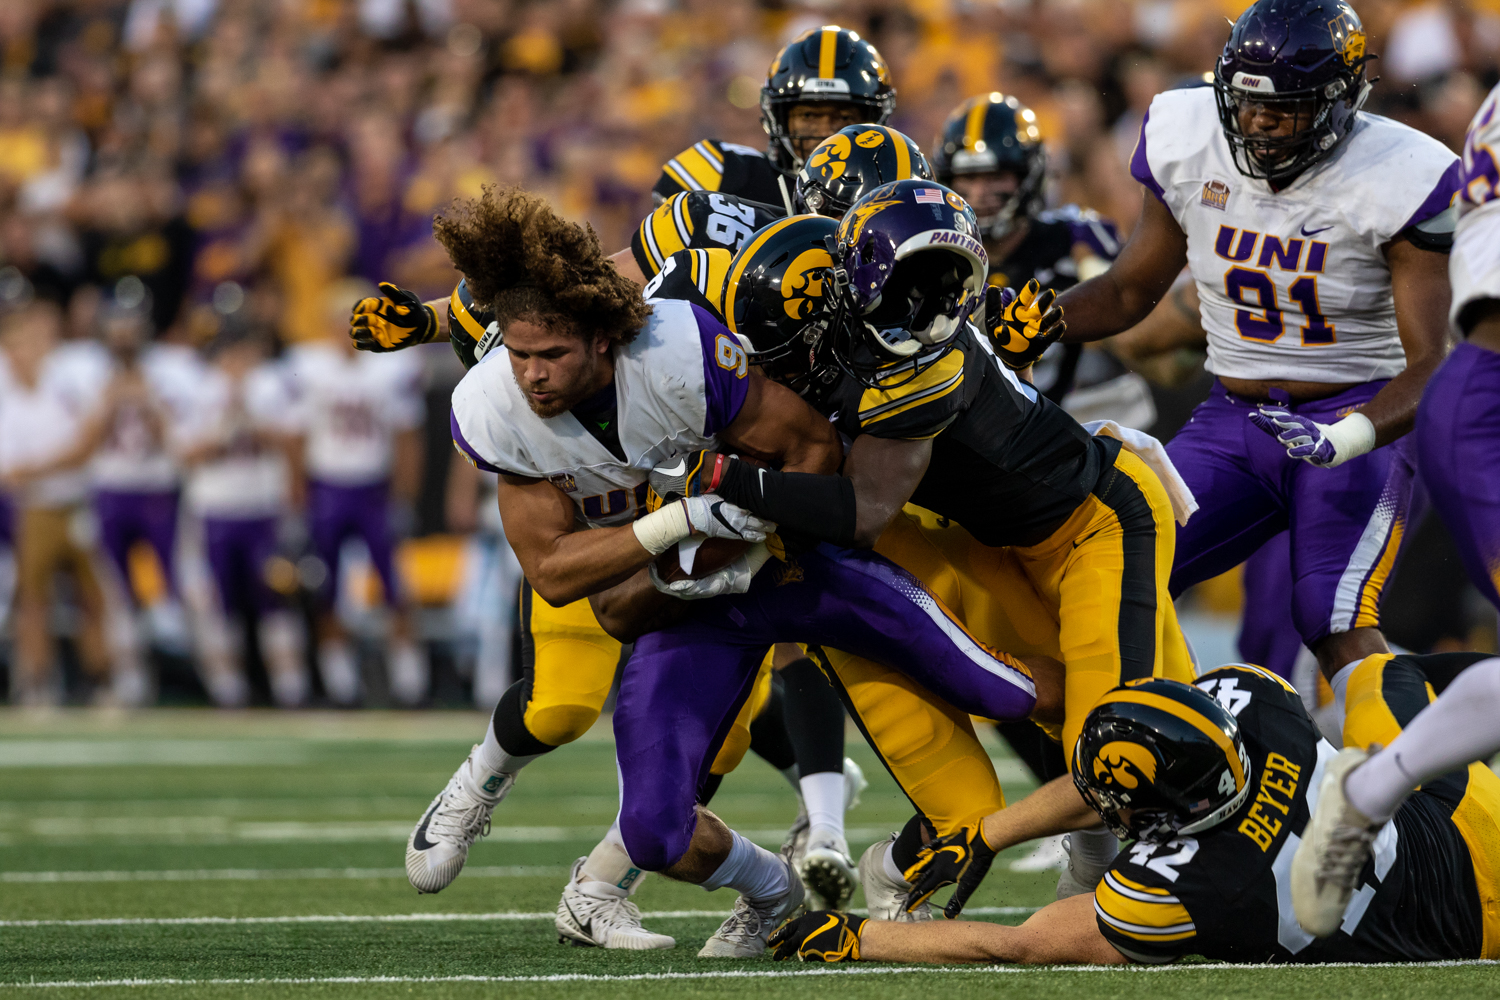 A Northern Iowa player loses his helmet as the Iowa defense swarms in the first half of a football game against the University of Northern Iowa at Kinnick Stadium on Saturday, Sep. 15, 2018. At halftime, the Hawkeyes led the Panthers 21-0. (David Harmantas/The Daily Iowan)